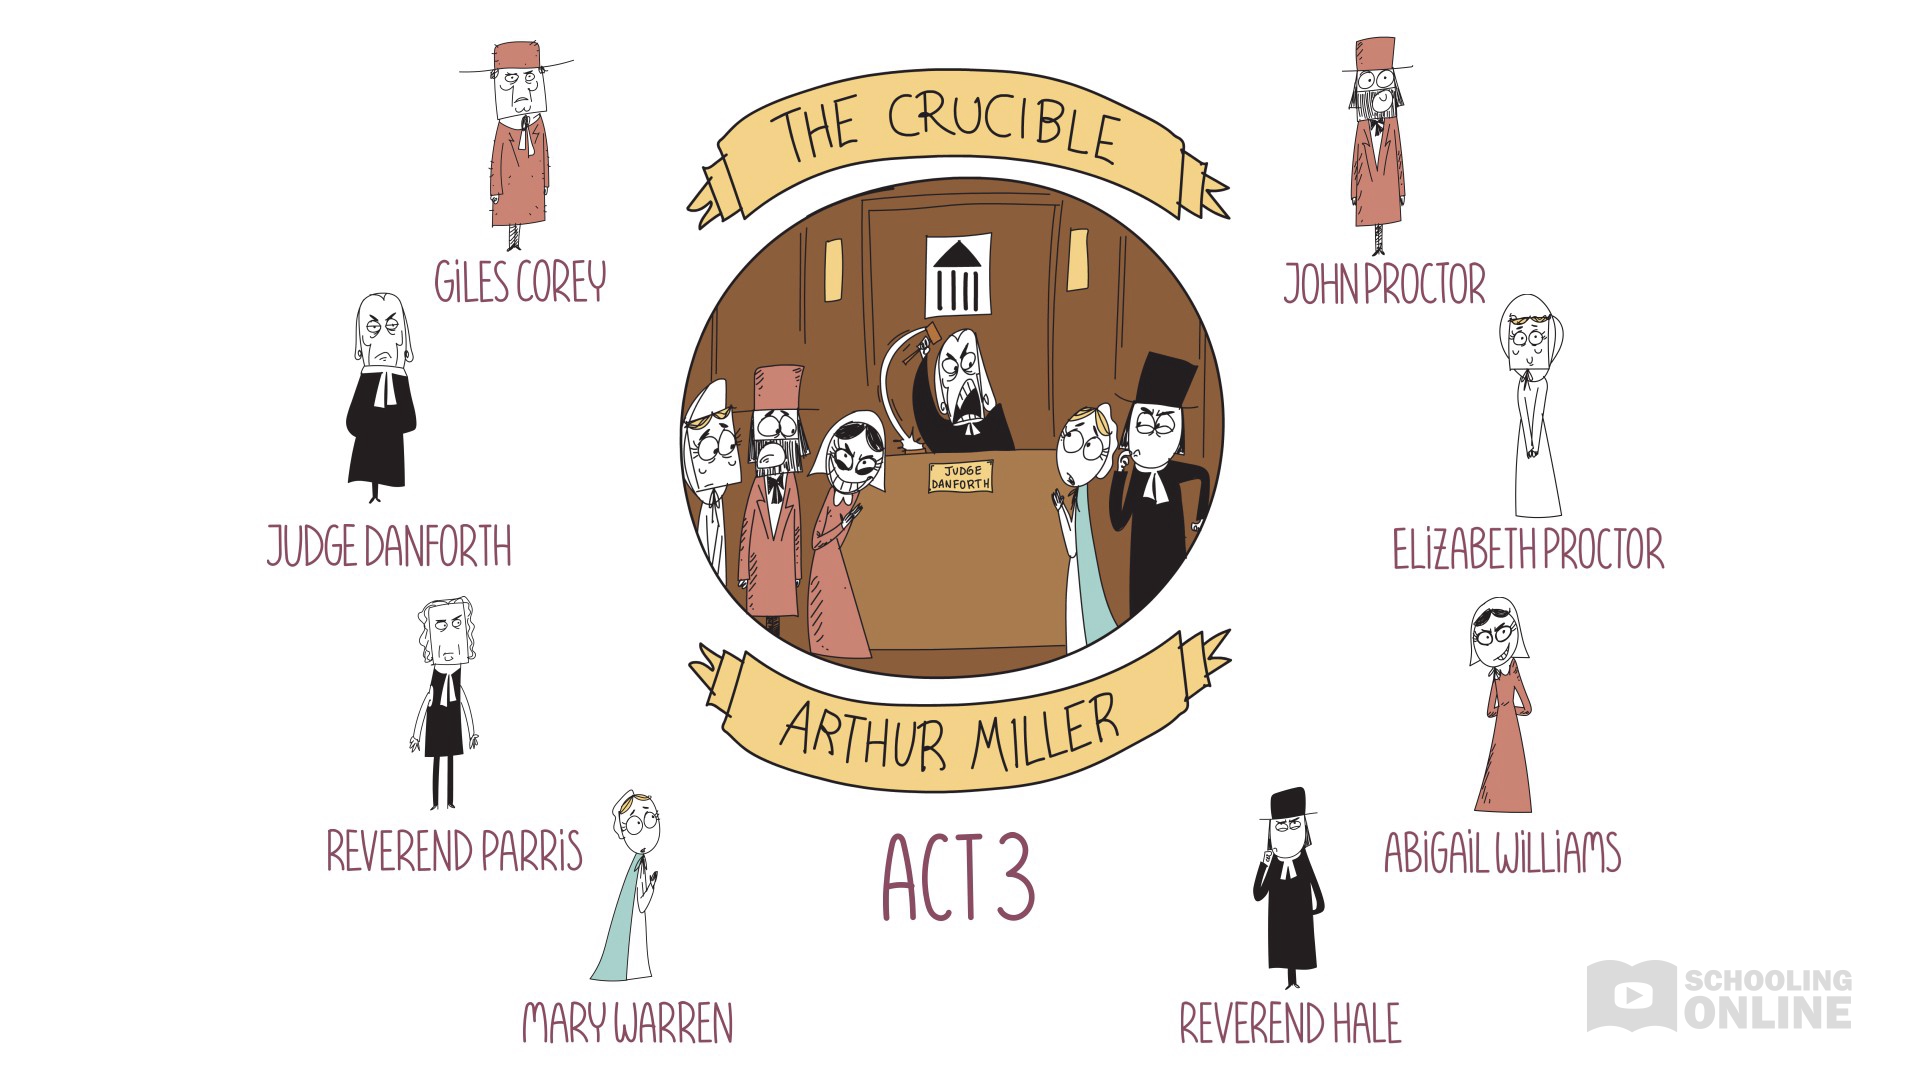 The Crucible - Arthur Miller - Act 3 Summary - Destroying Drama Series